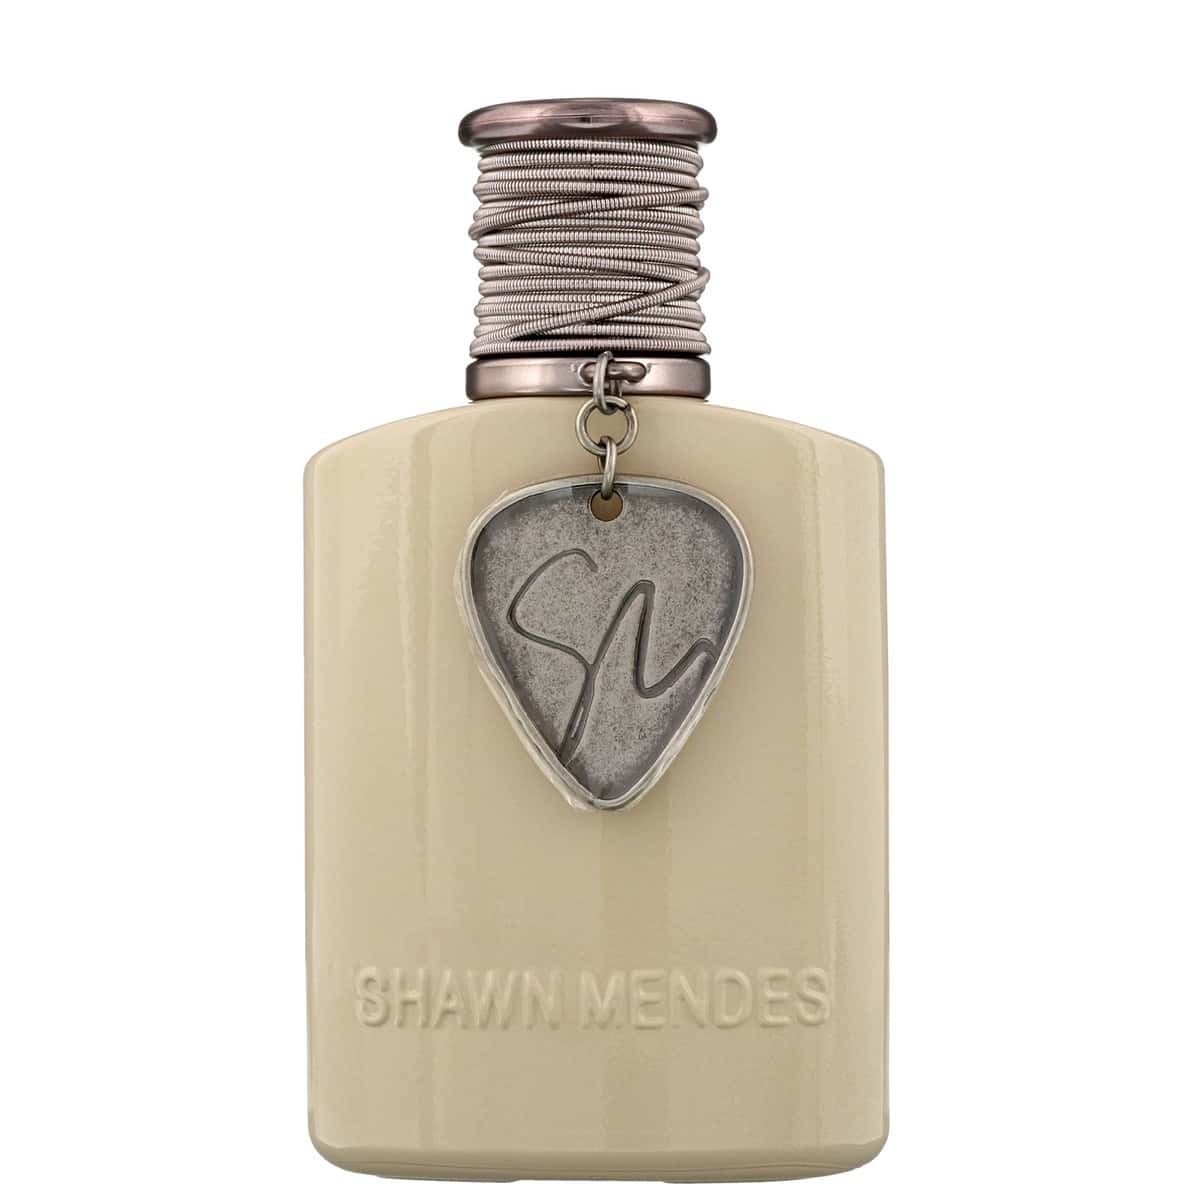 Shawn Mendes Signature II Edp 50ml